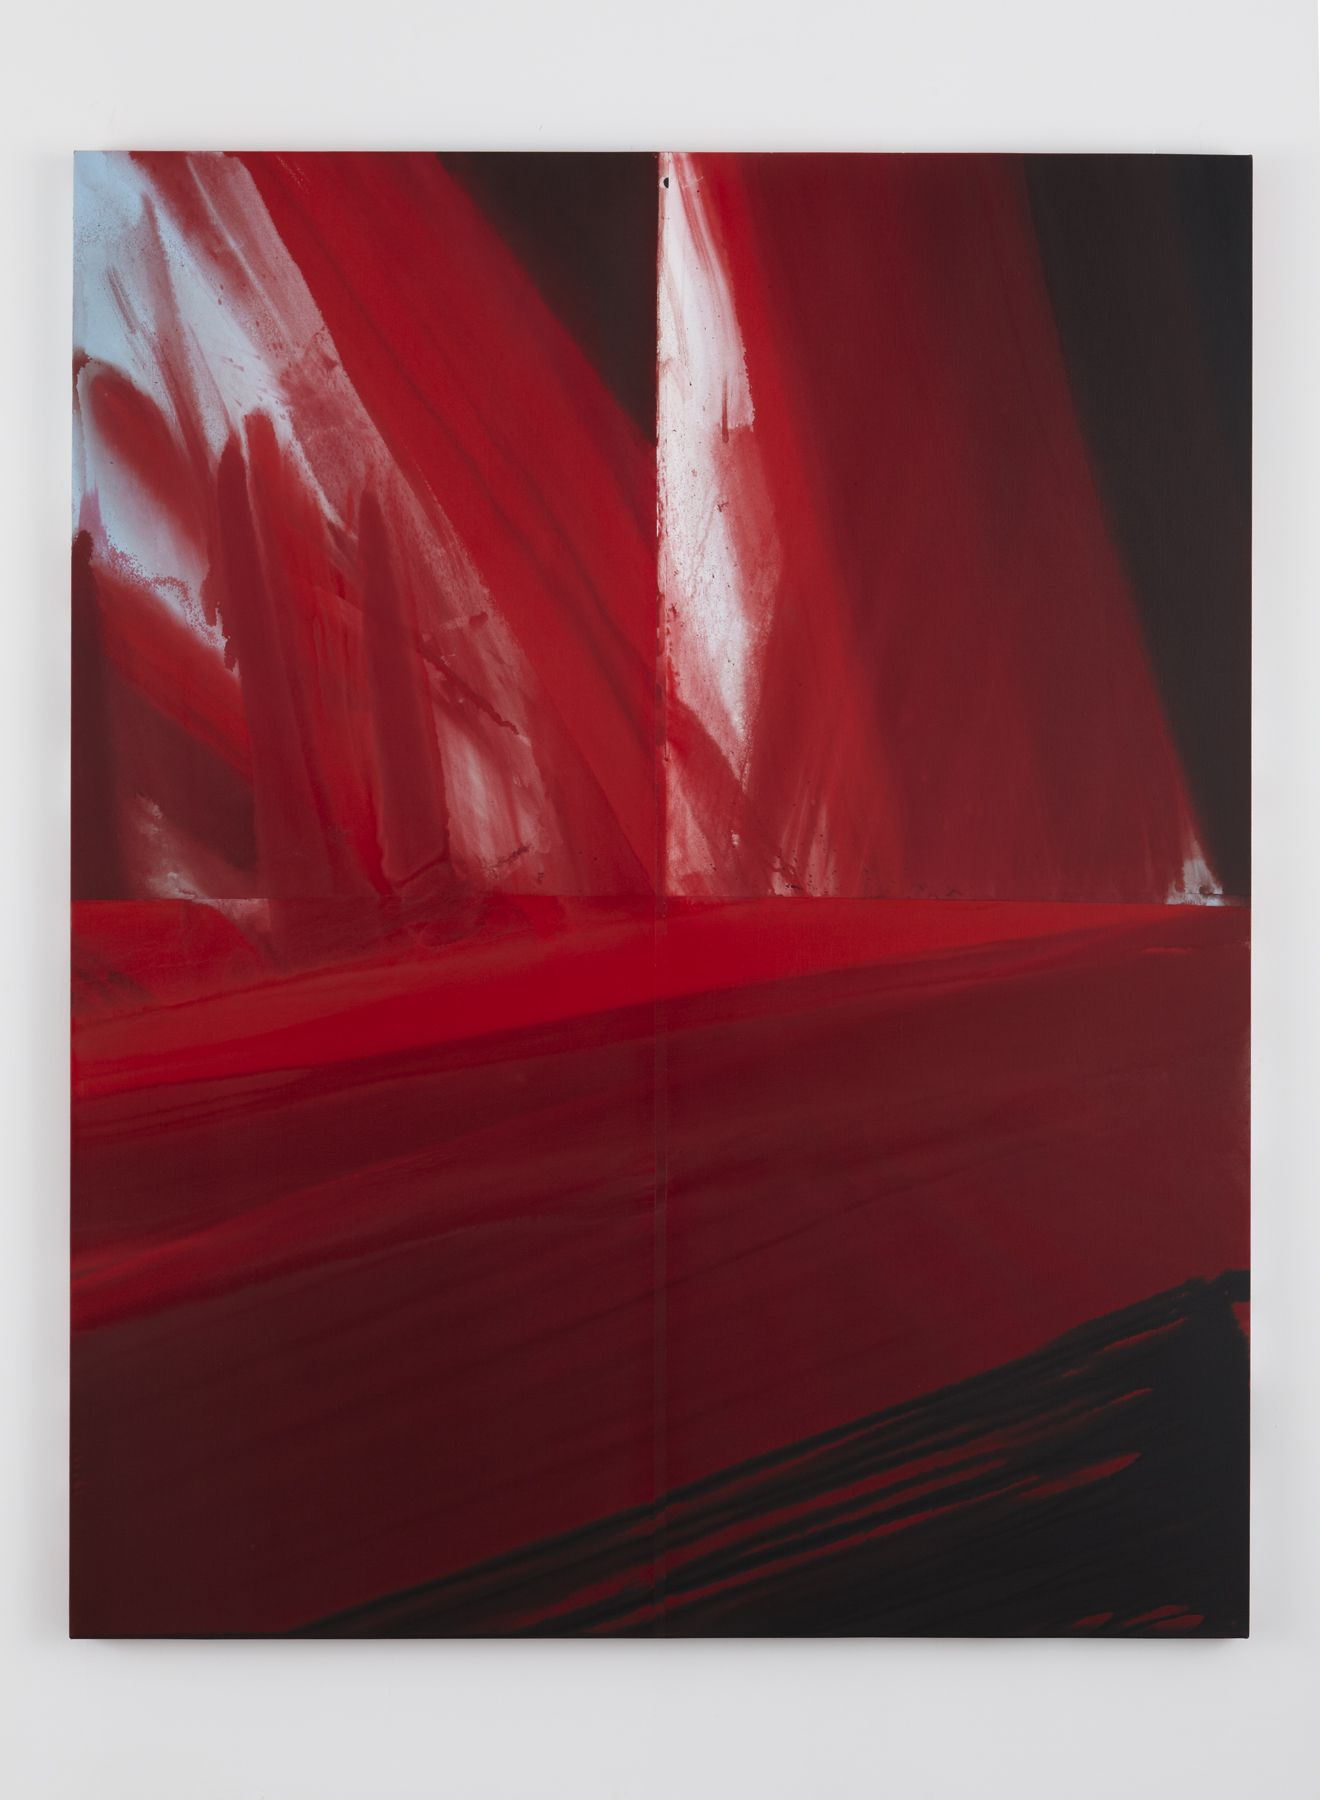 a gestural painting of red brushstrokes by barnaby furnas